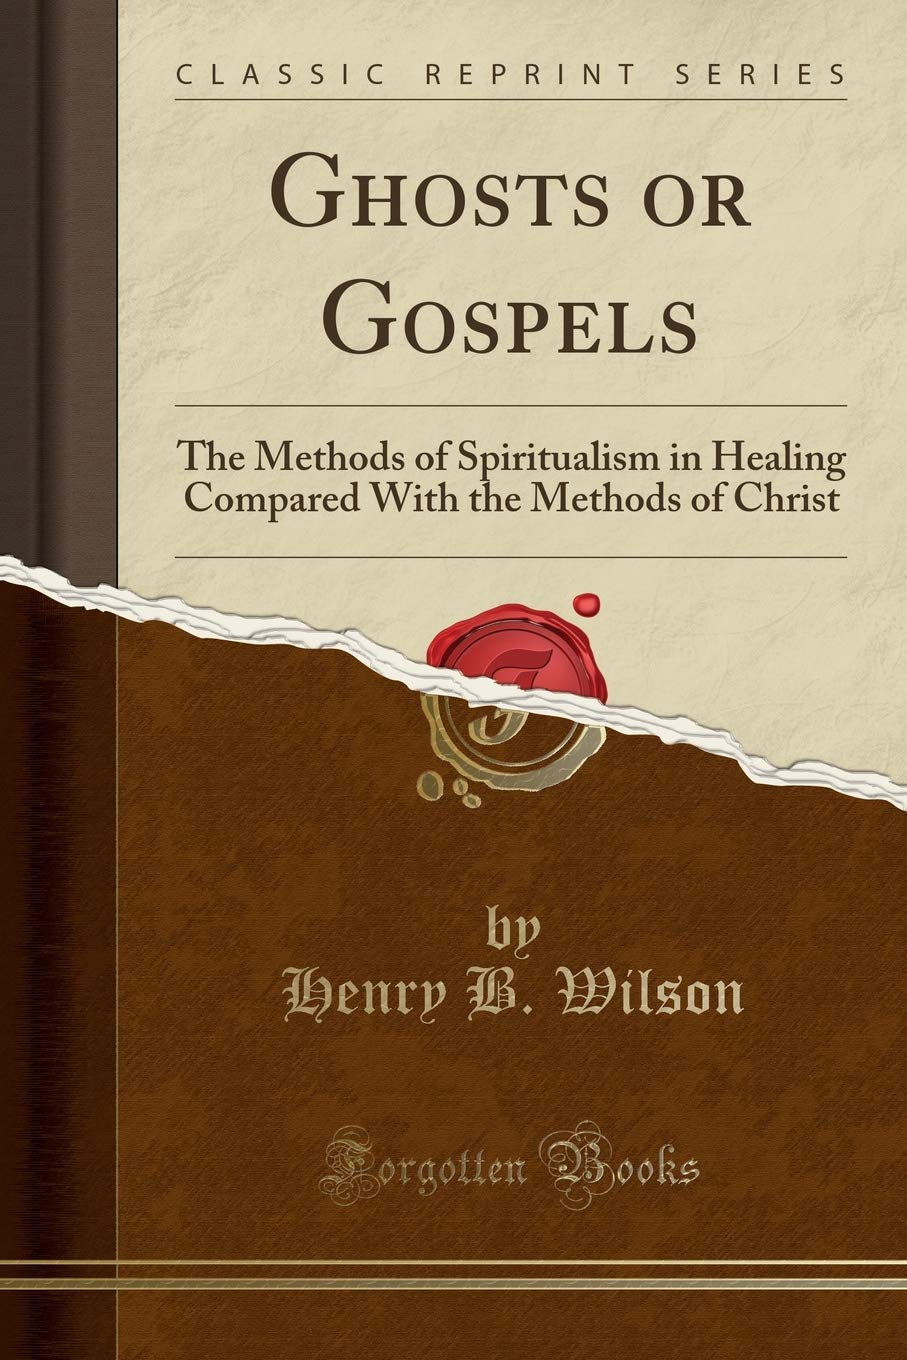 Ghosts or Gospels: The Methods of Spiritualism in Healing Compared With the Methods of Christ (Classic Reprint) pdf epub